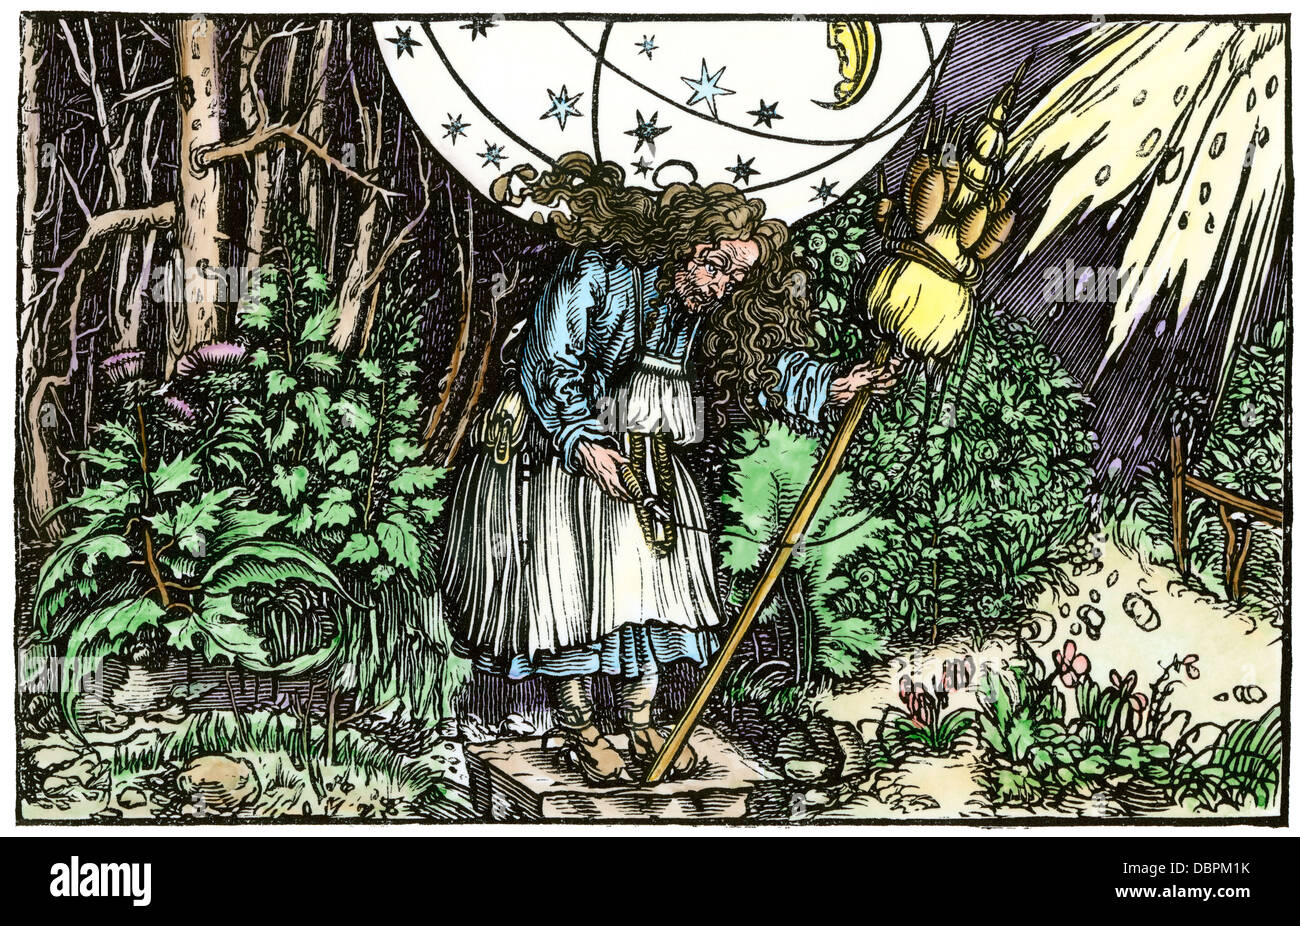 Old-maid witch, from a 1537 German translation of Boethius. Hand-colored woodcut - Stock Image